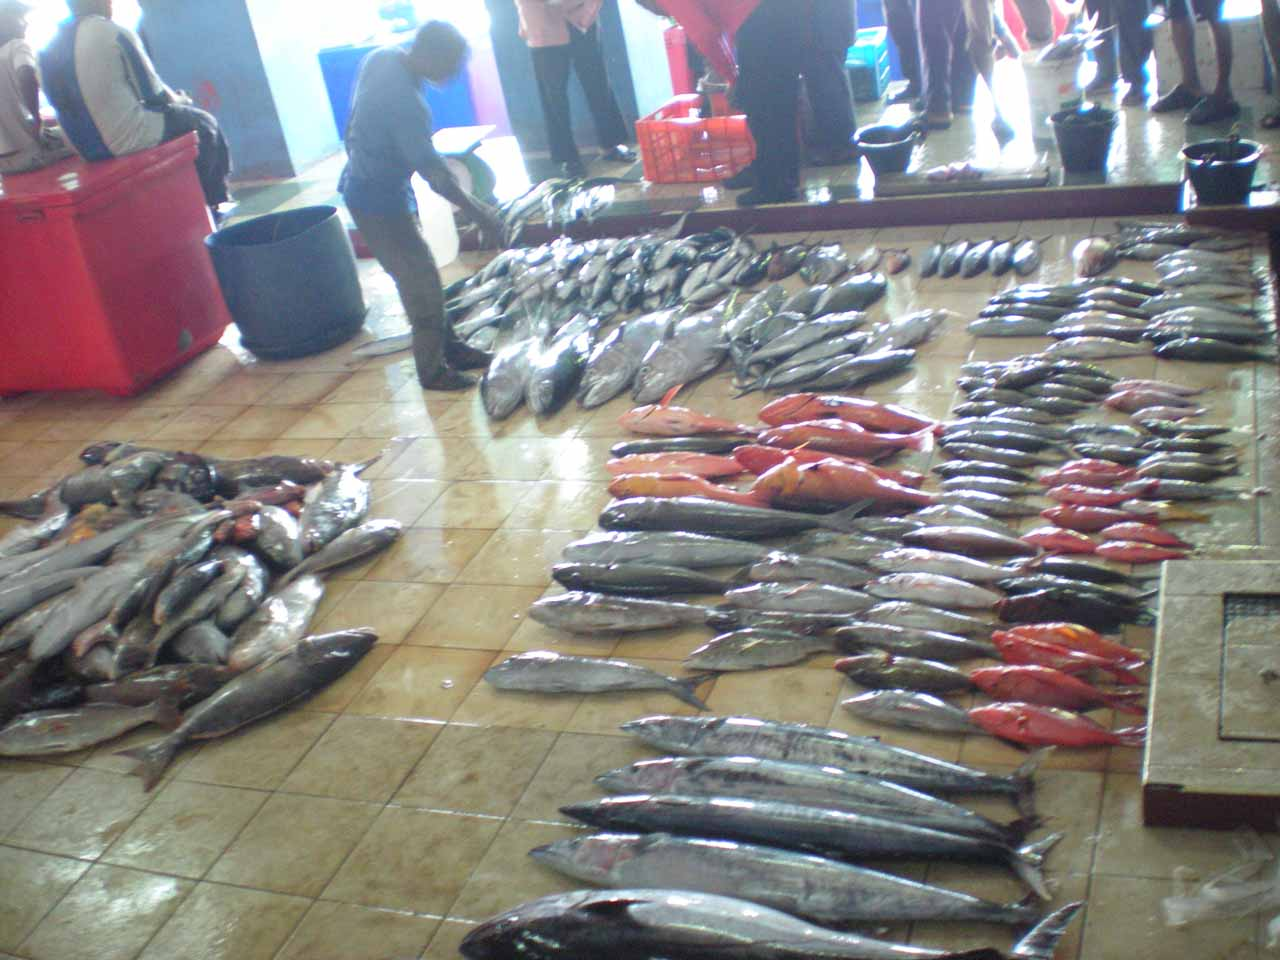 Lots of huge catches on the floor of the fish market in Male